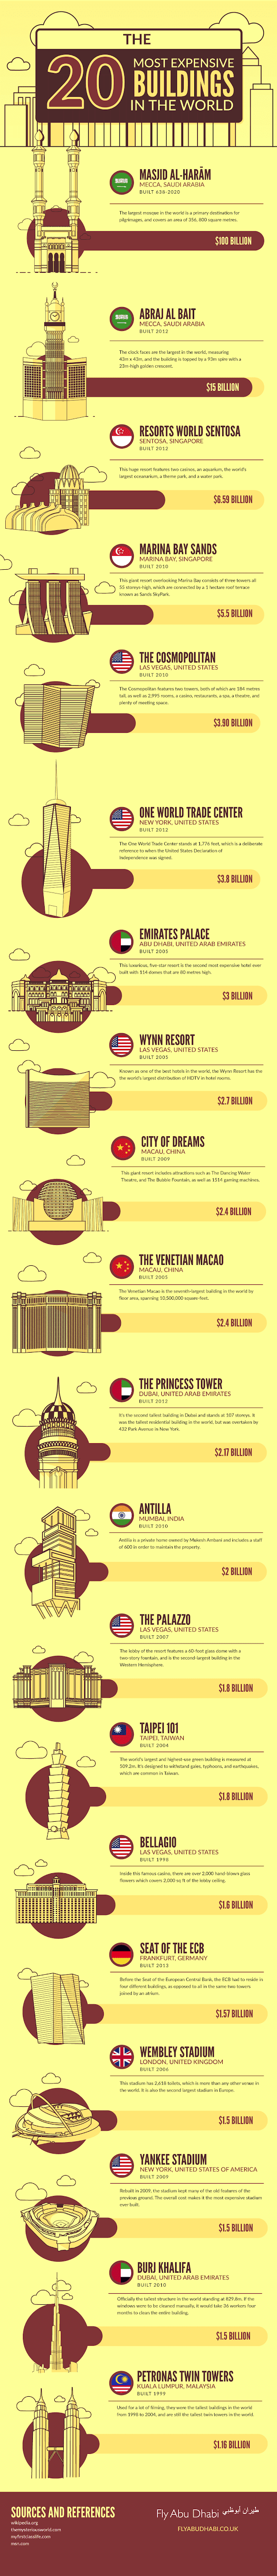 The 20 Most Expensive Buildings in the World